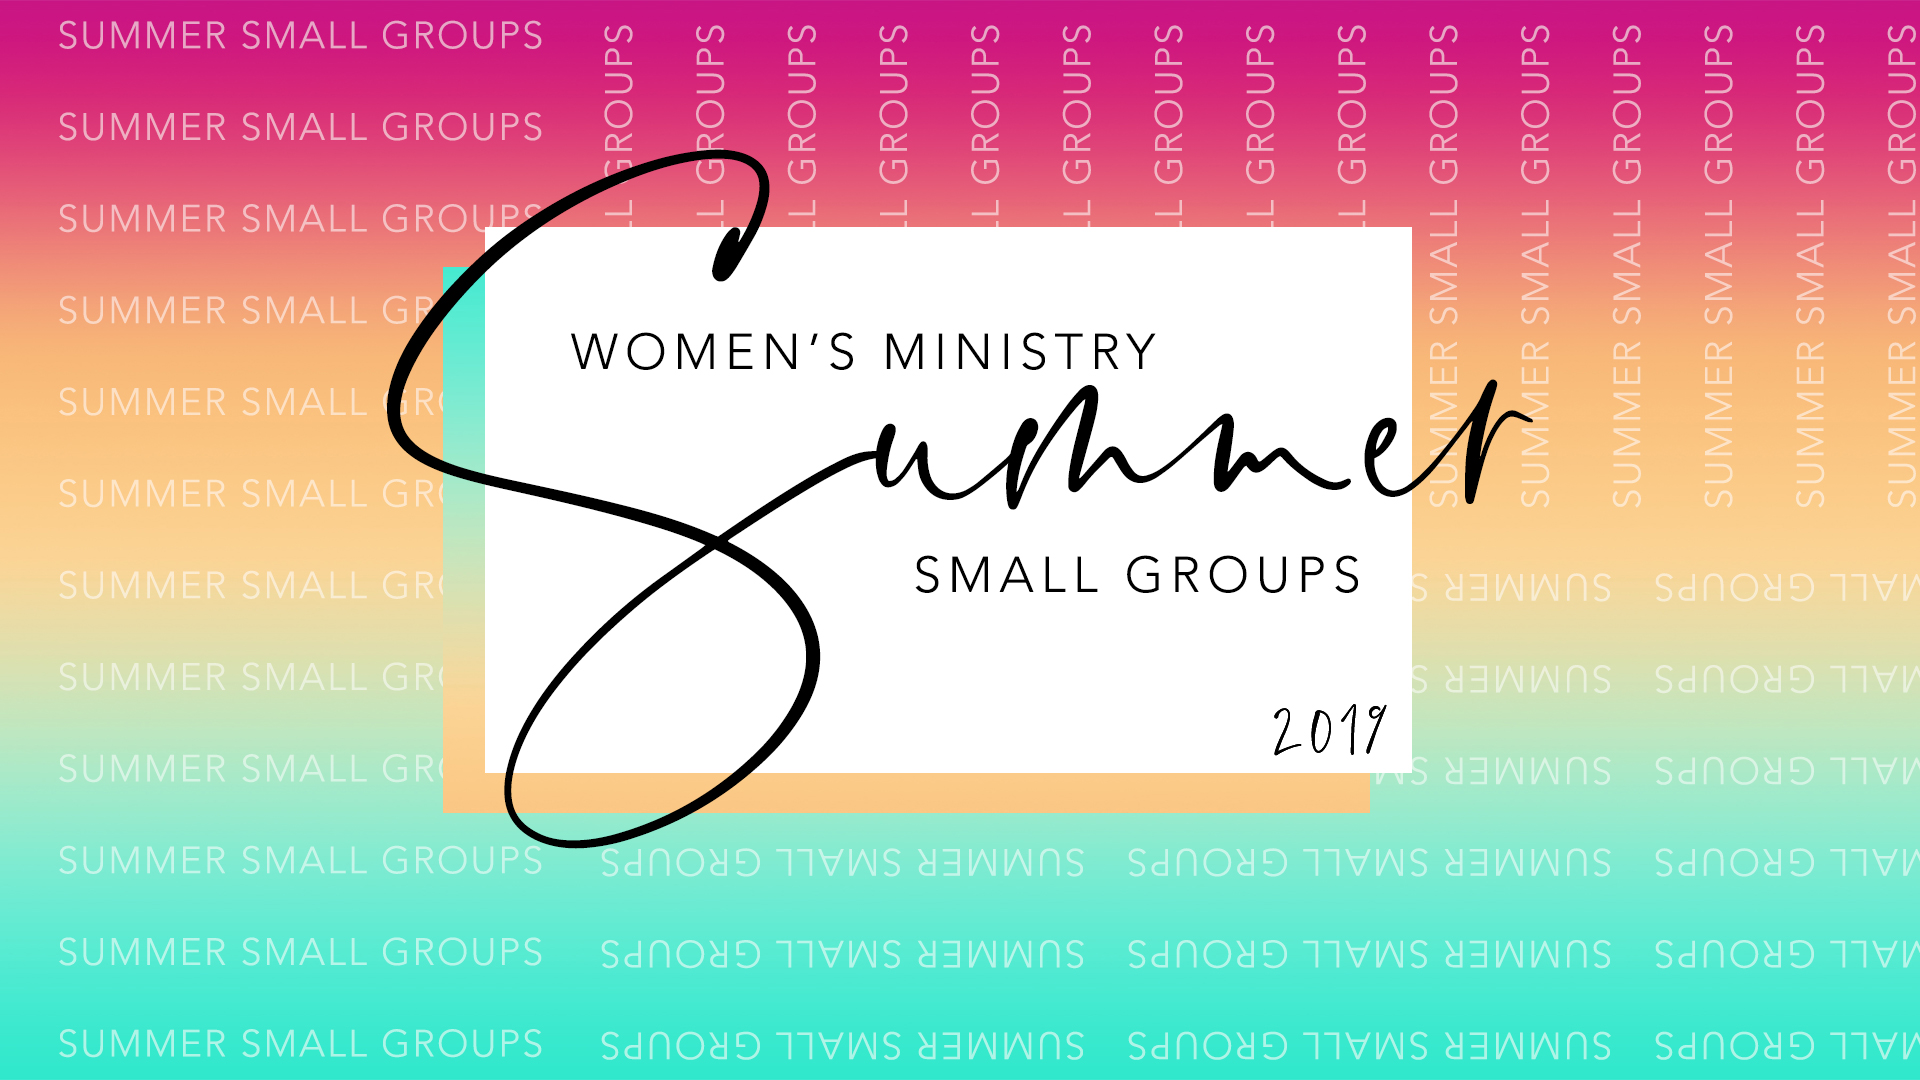 Summer Small Groups | 2019